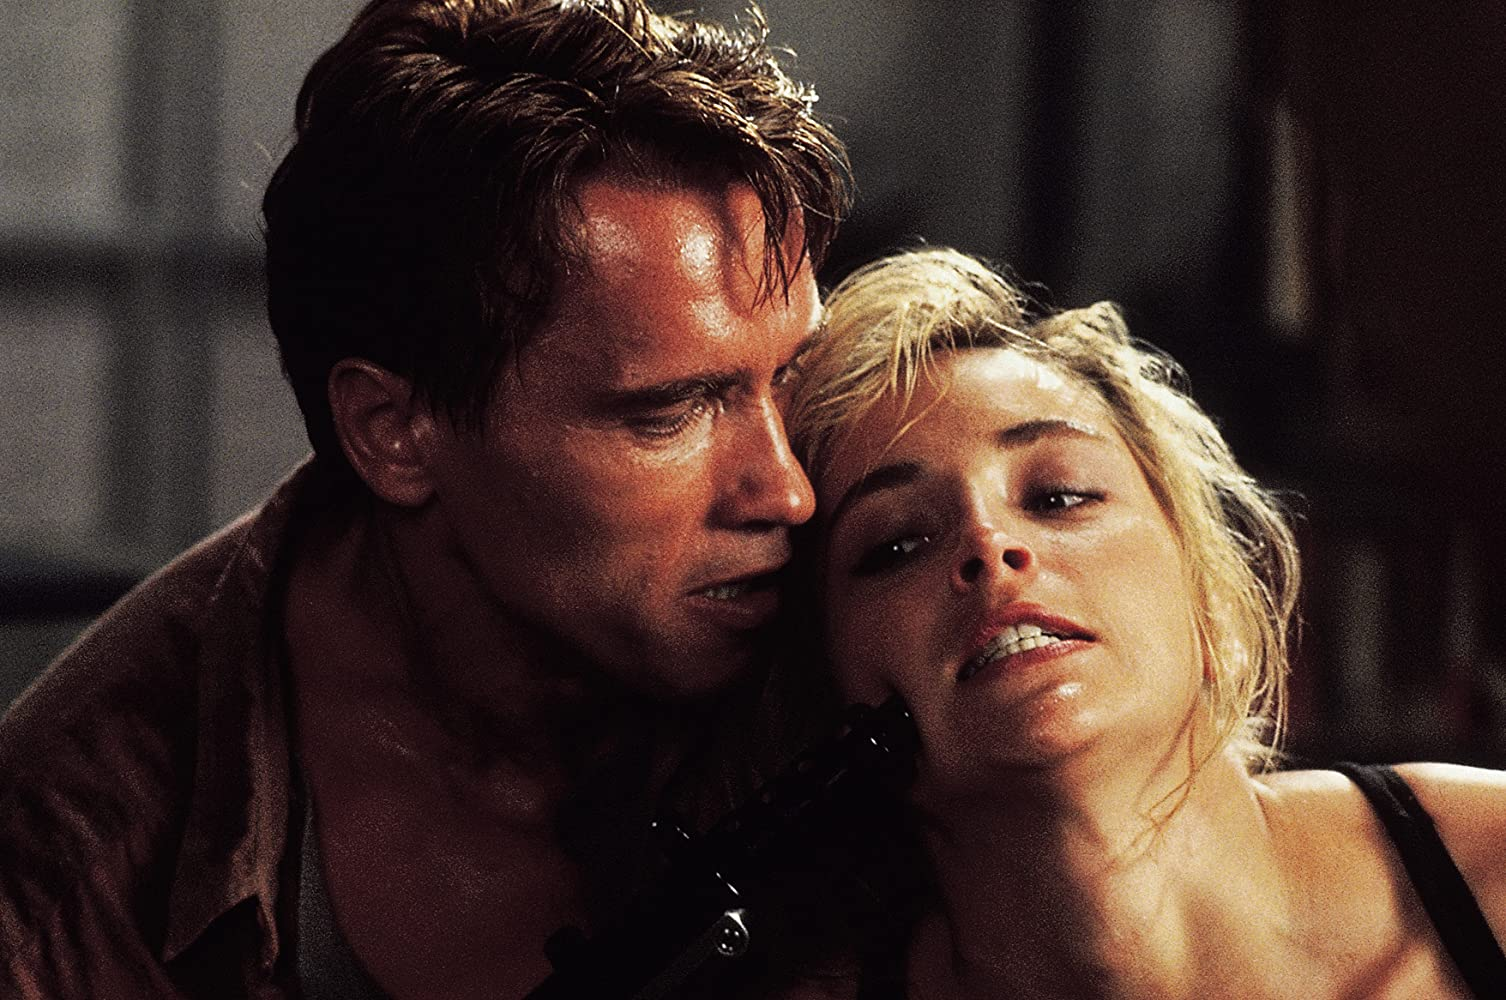 Arnold Schwarzenegger and Sharon Stone in Total Recall 1990